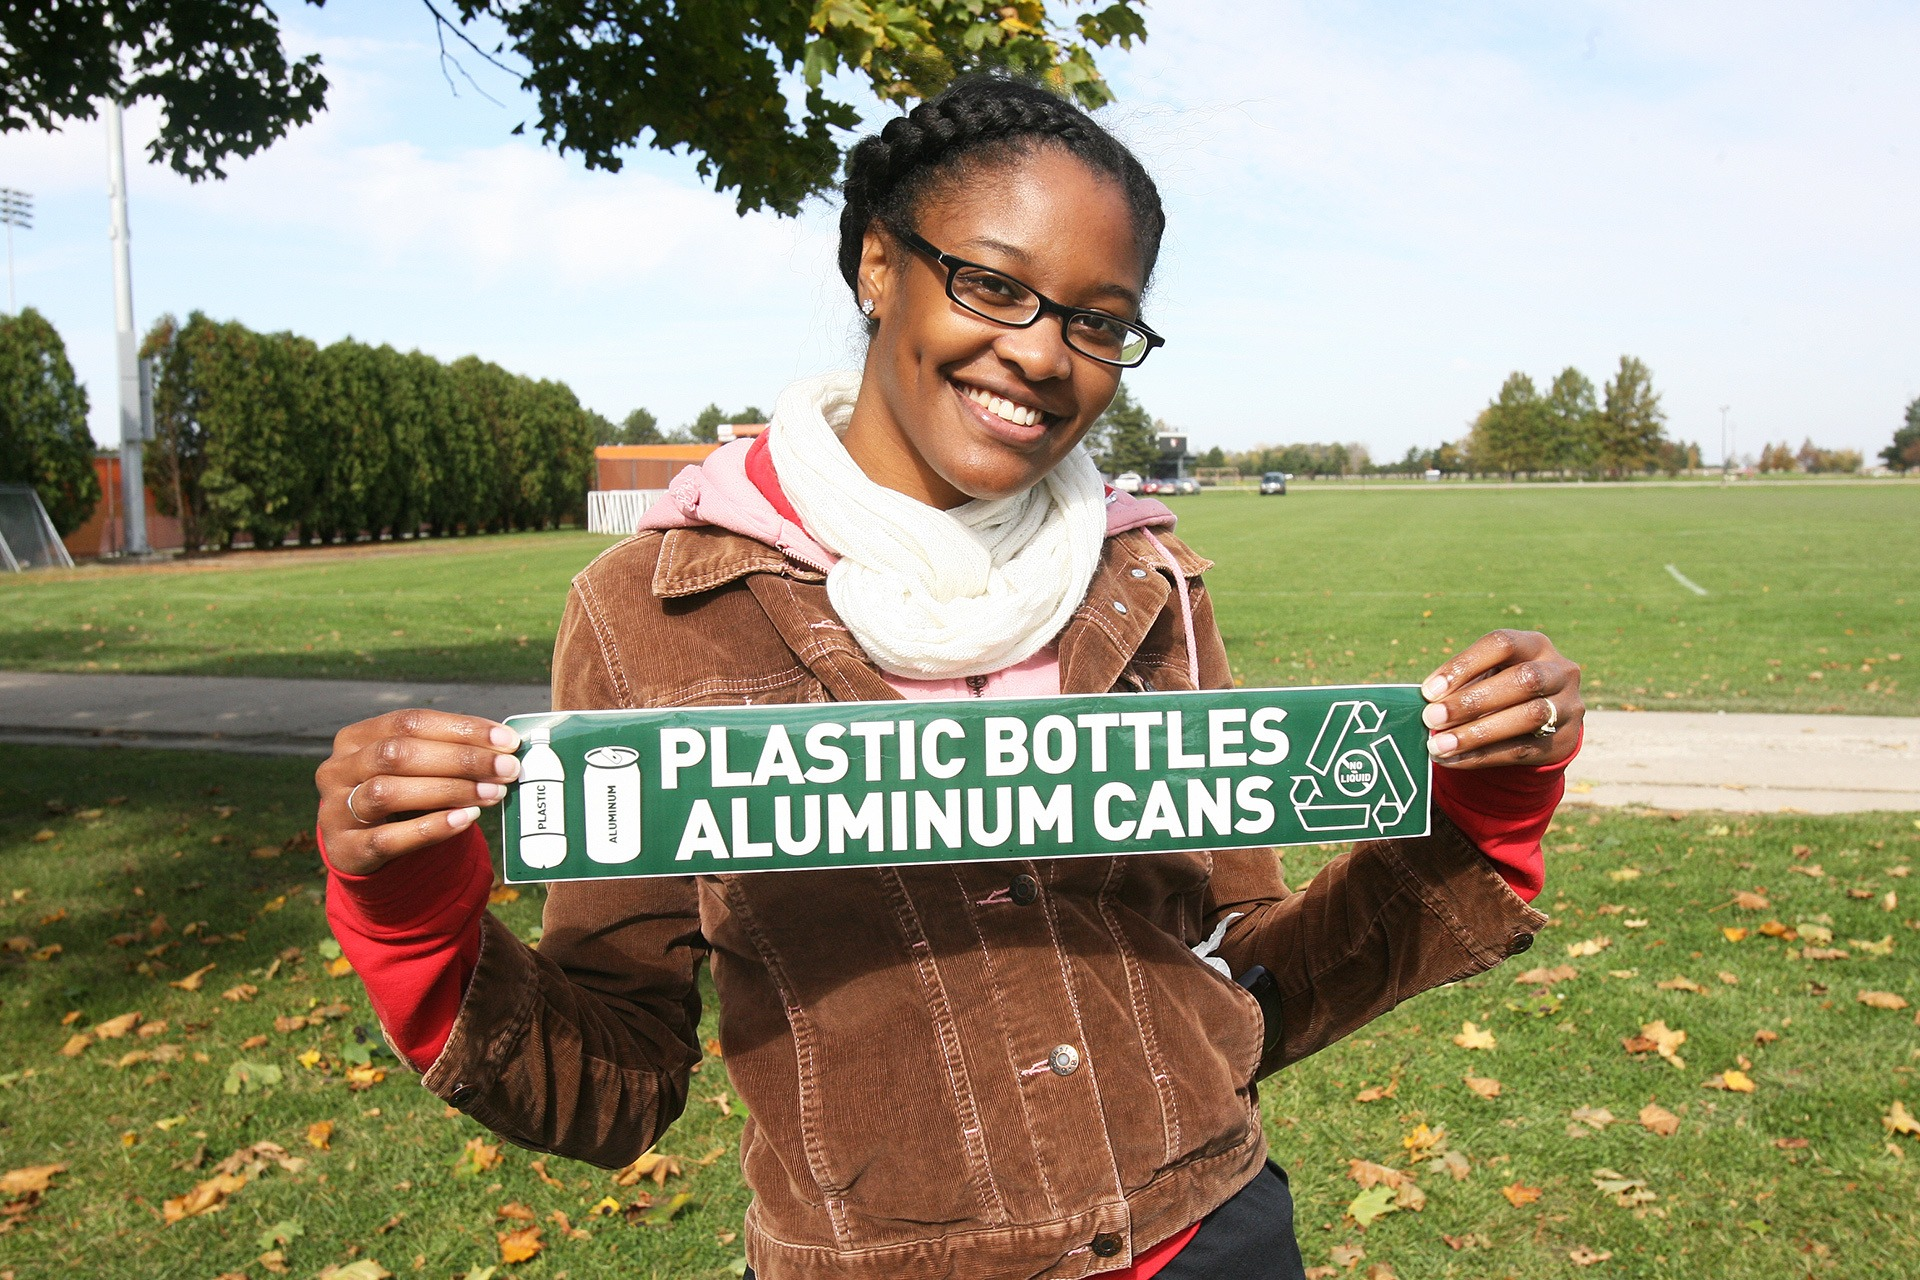 Student holding recycling sign